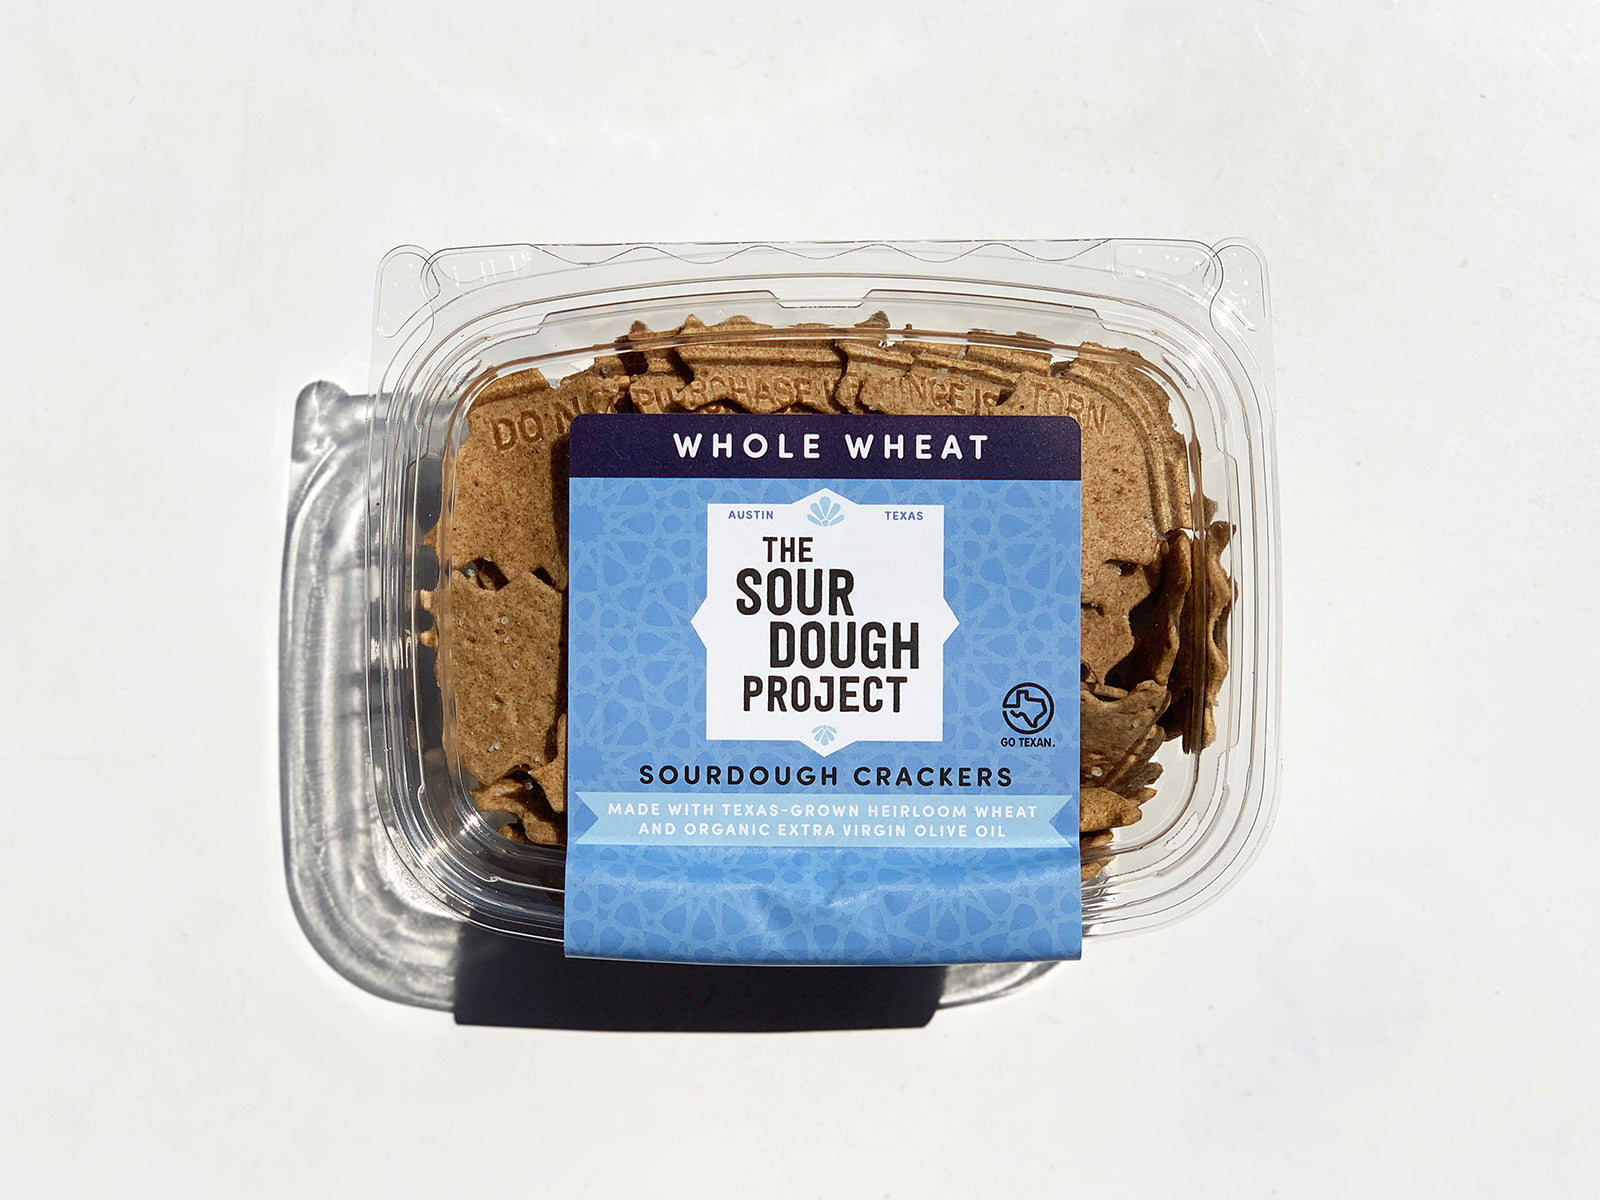 The Sourdough Project crackers in Whole Wheat flavor